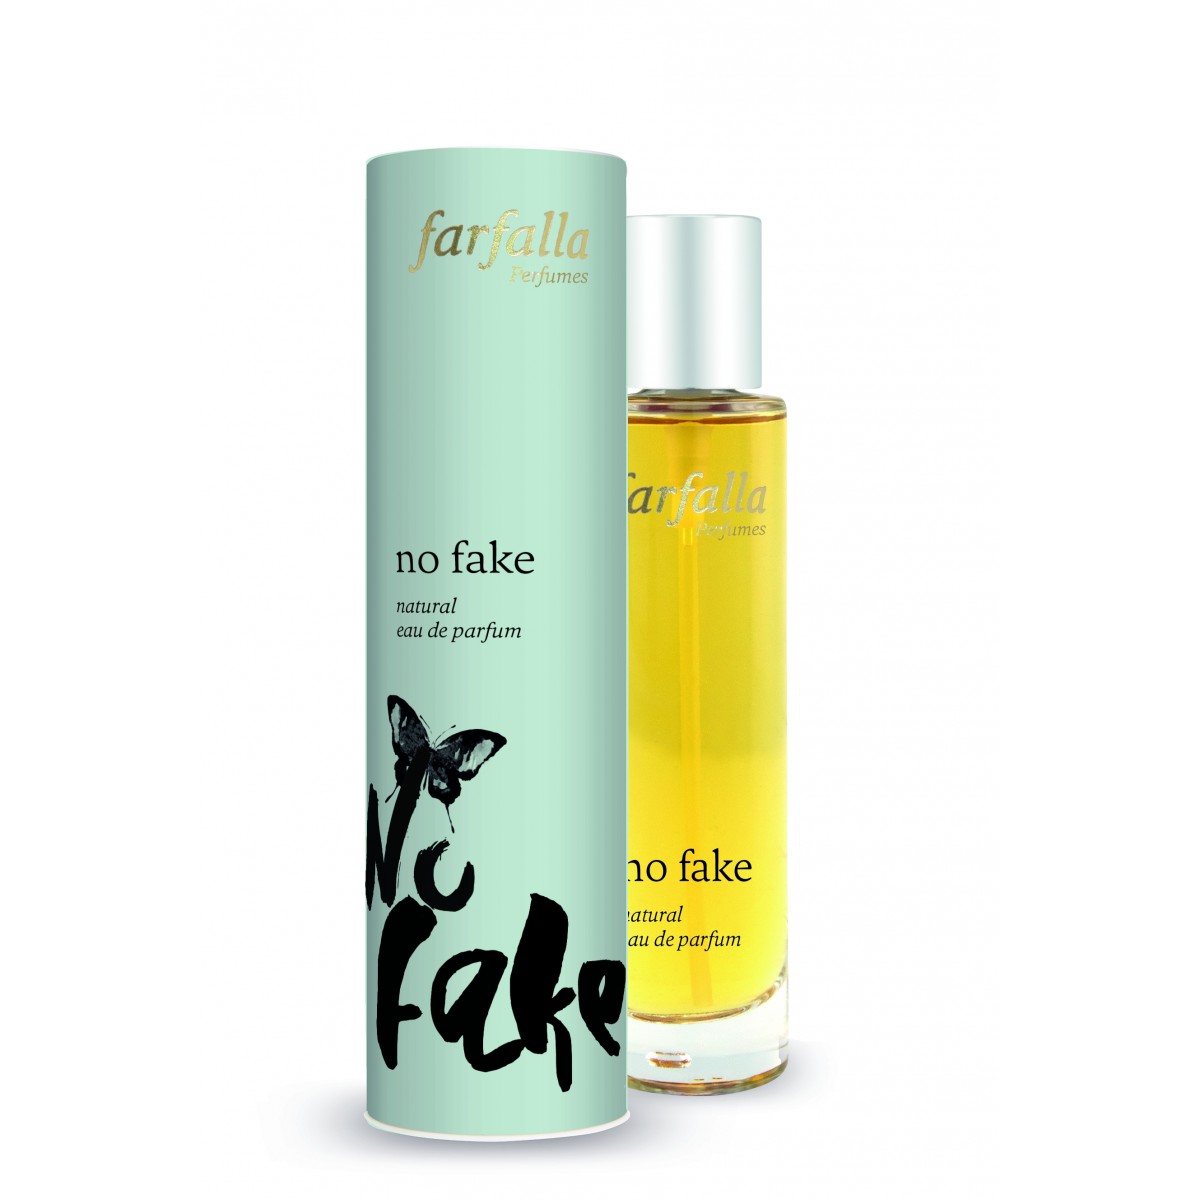 farfalla No Fake natural eau de parfum 50ml